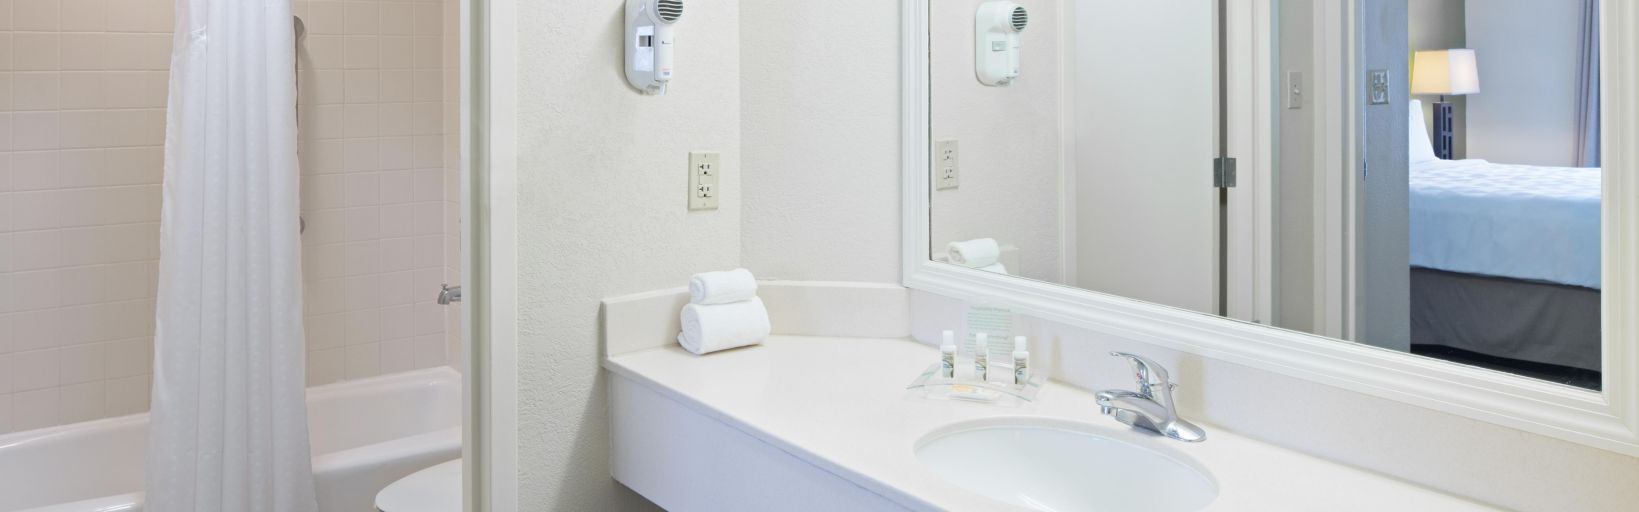 Holiday Inn Orlando Hotels   Holiday Inn Hotel & Suites Across From ...